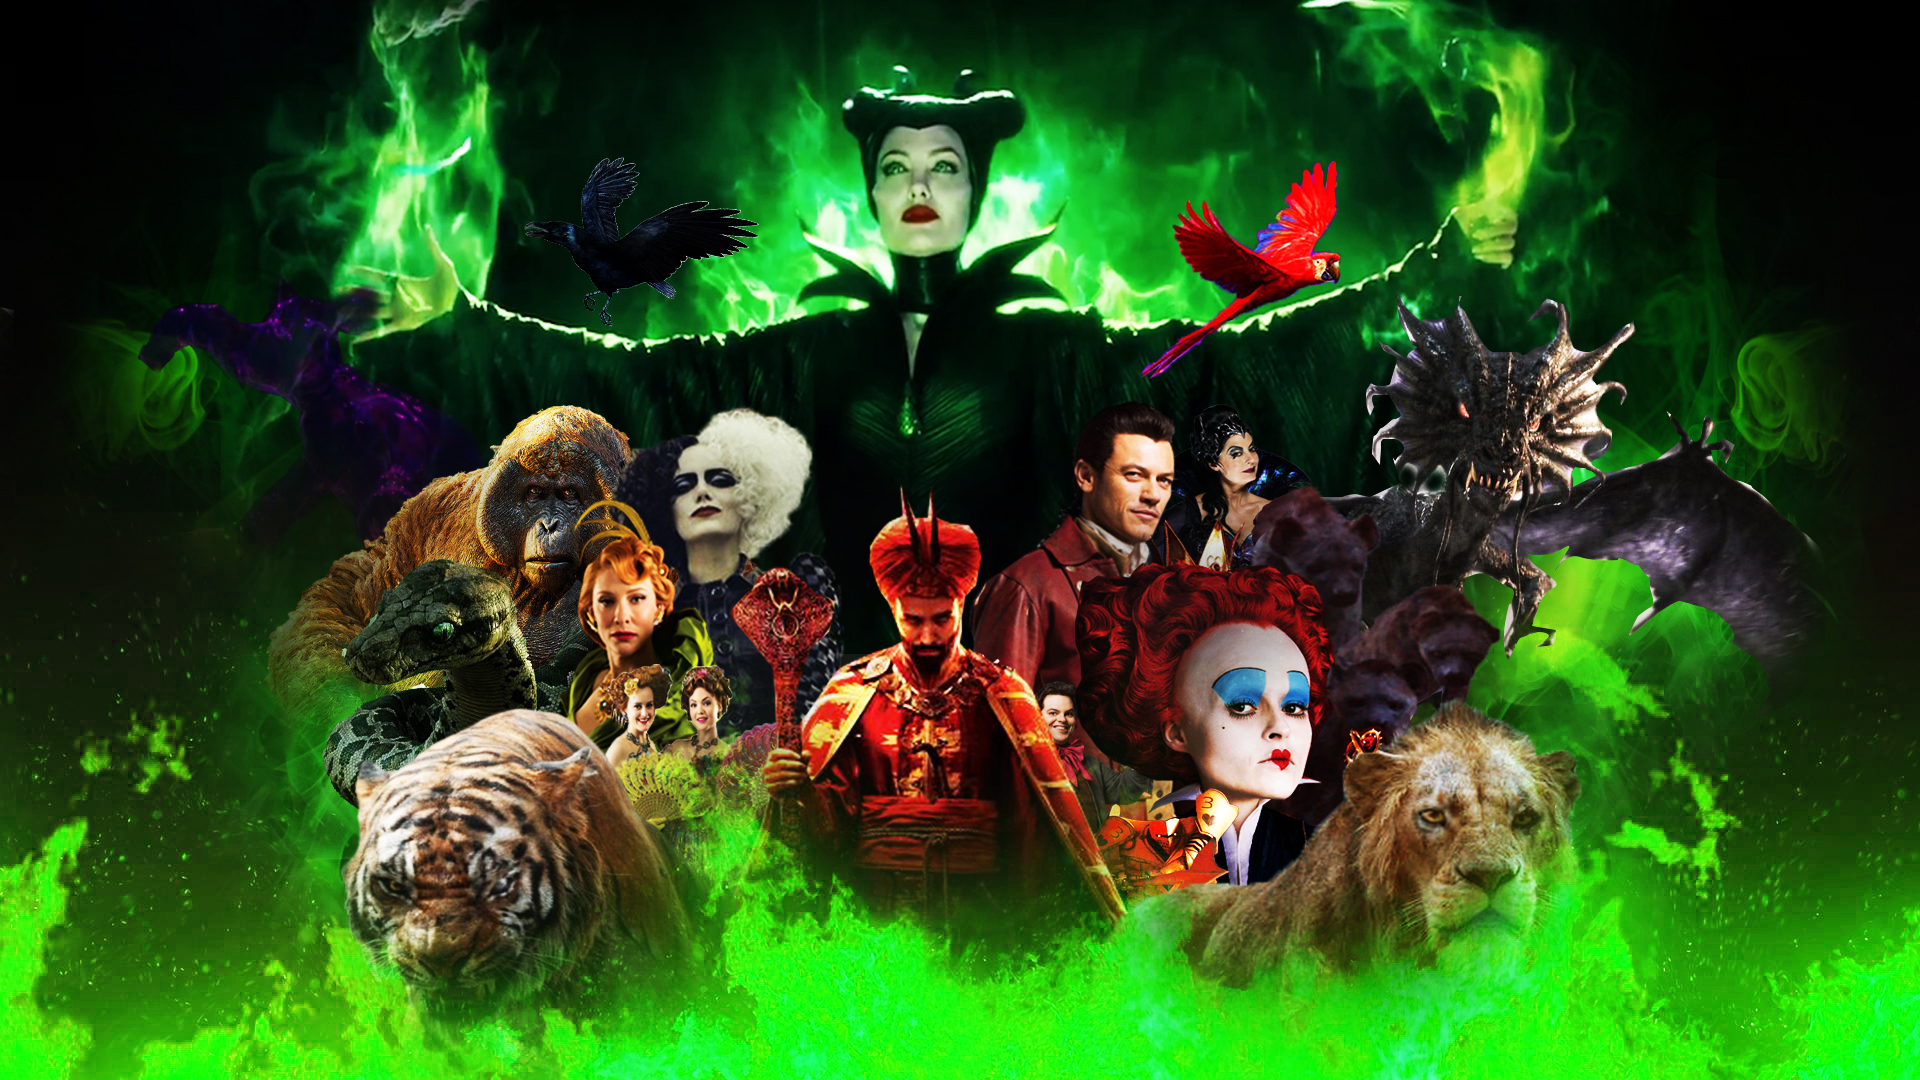 Disney Villains Wallpaper Live Action By The Dark Mamba 995 On